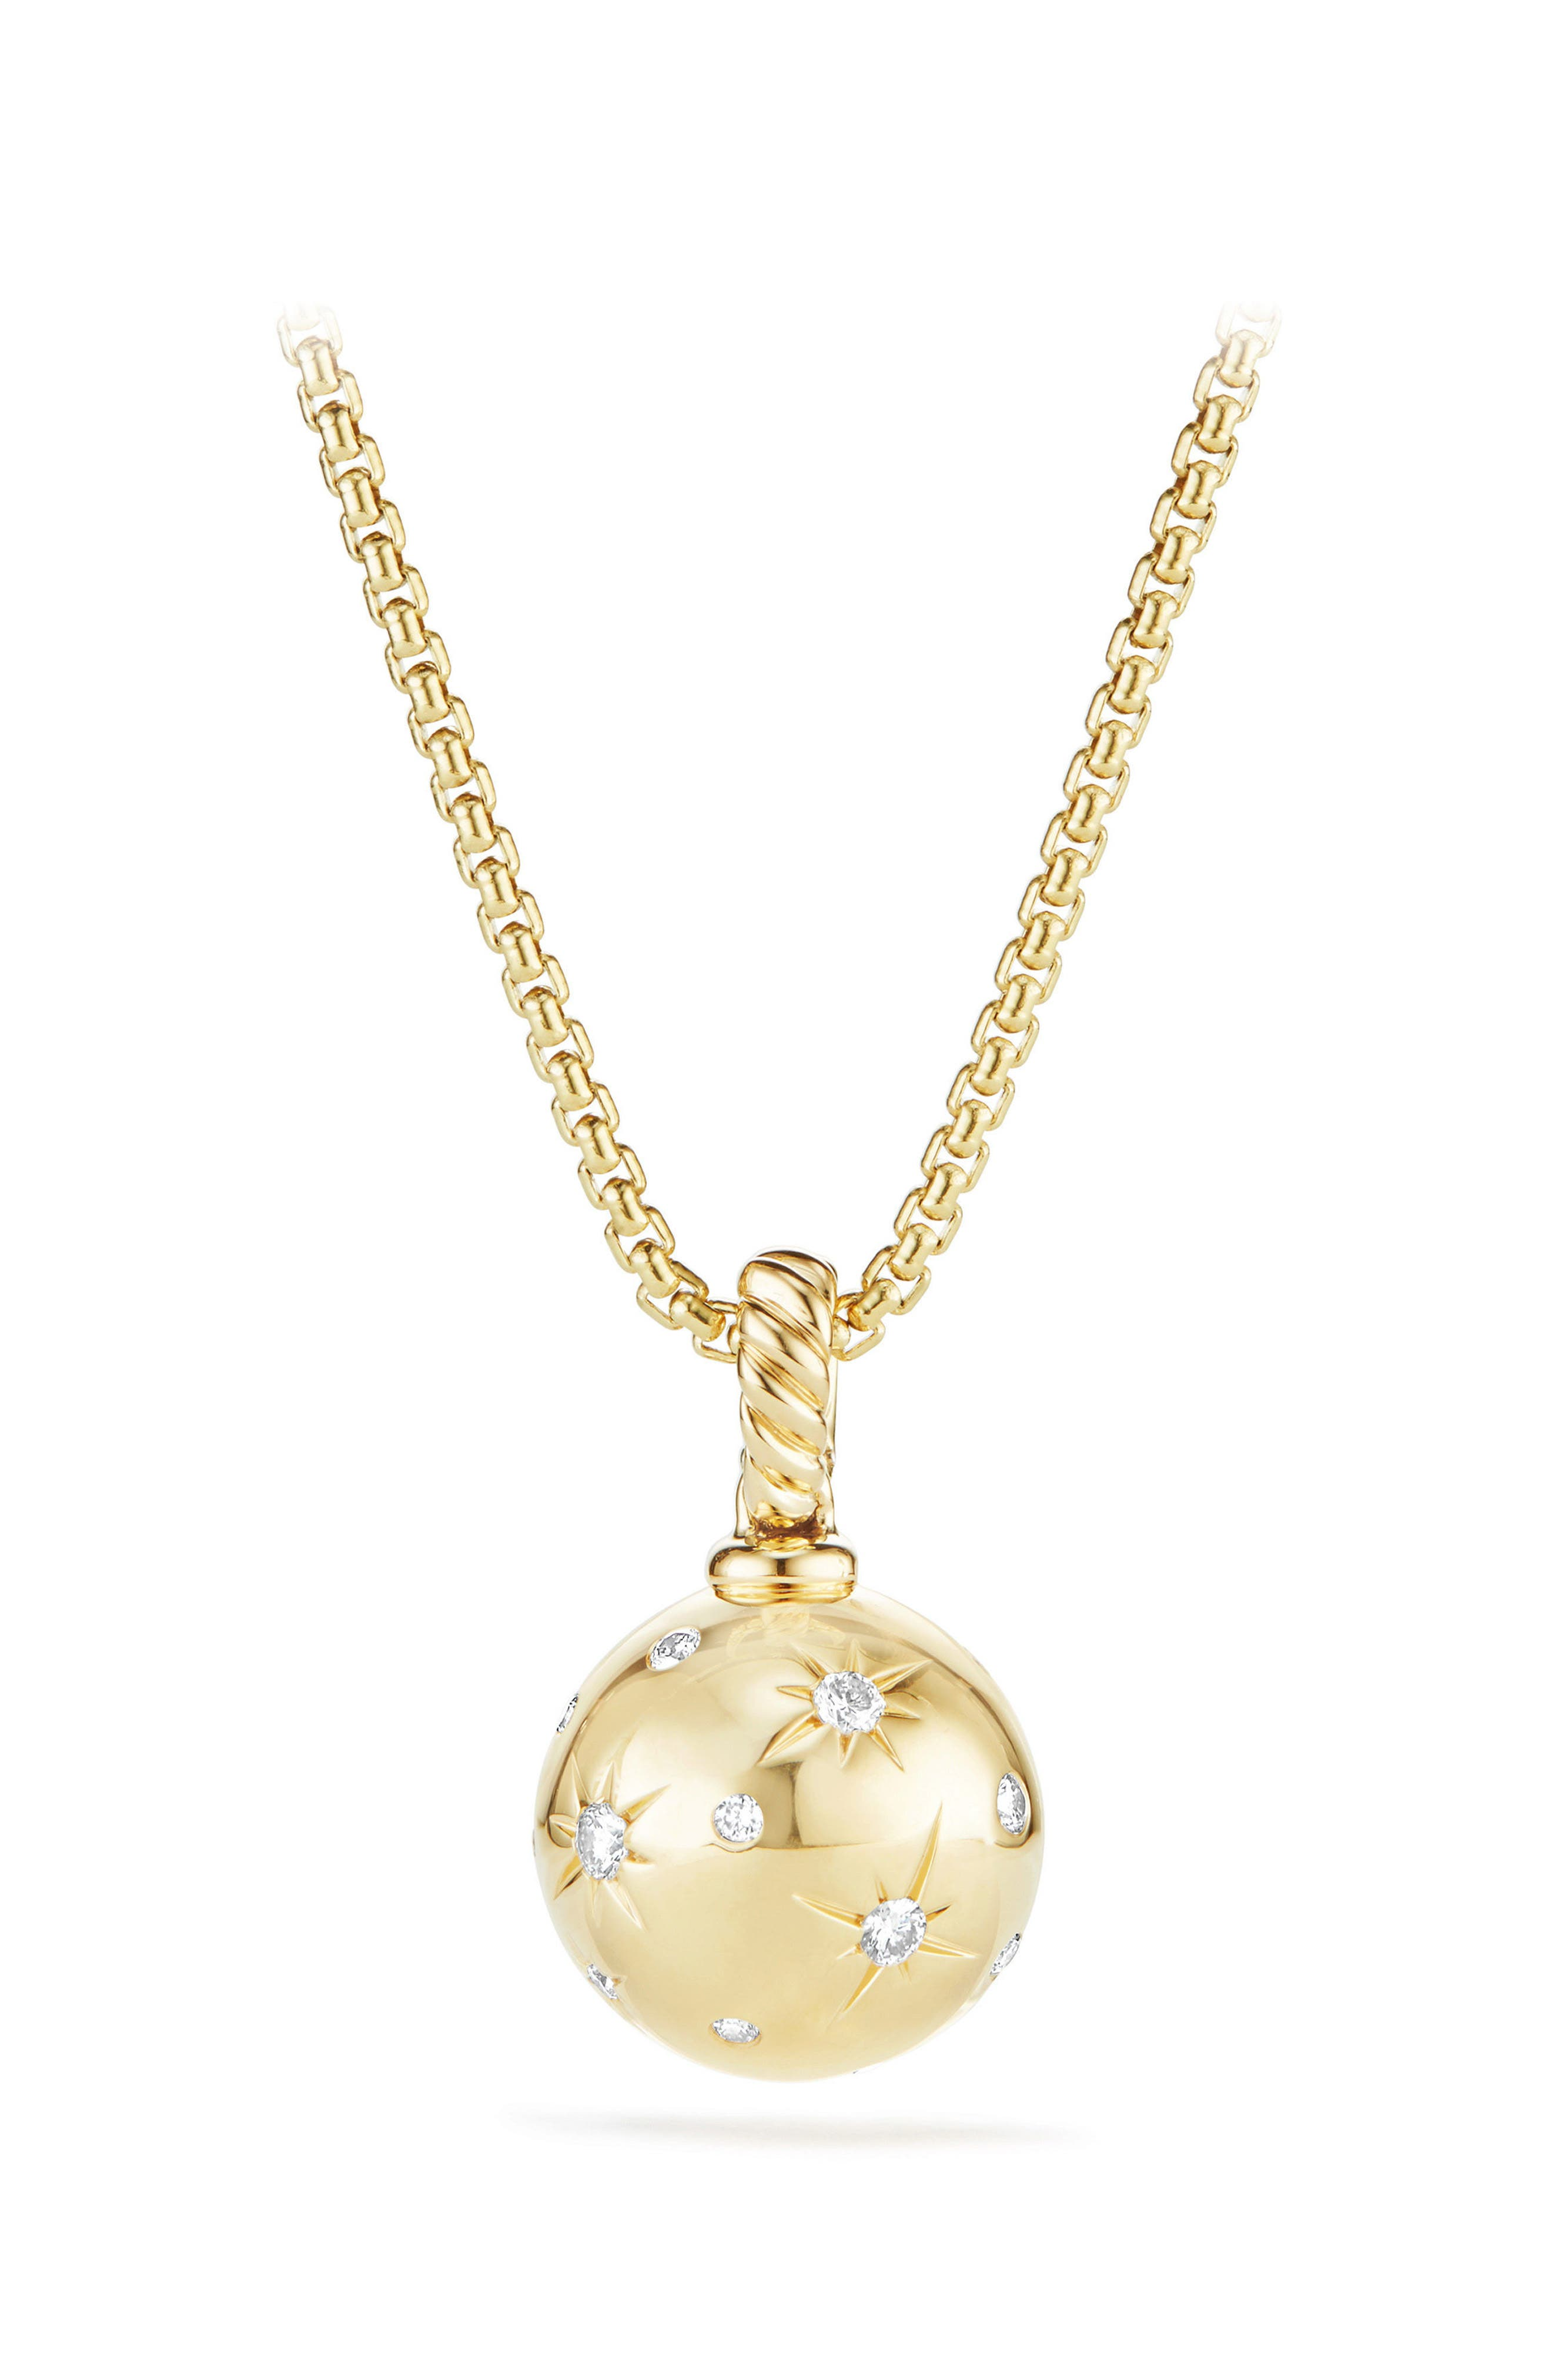 Solari Pendant with Diamonds in 18K Gold,                         Main,                         color, Yellow Gold